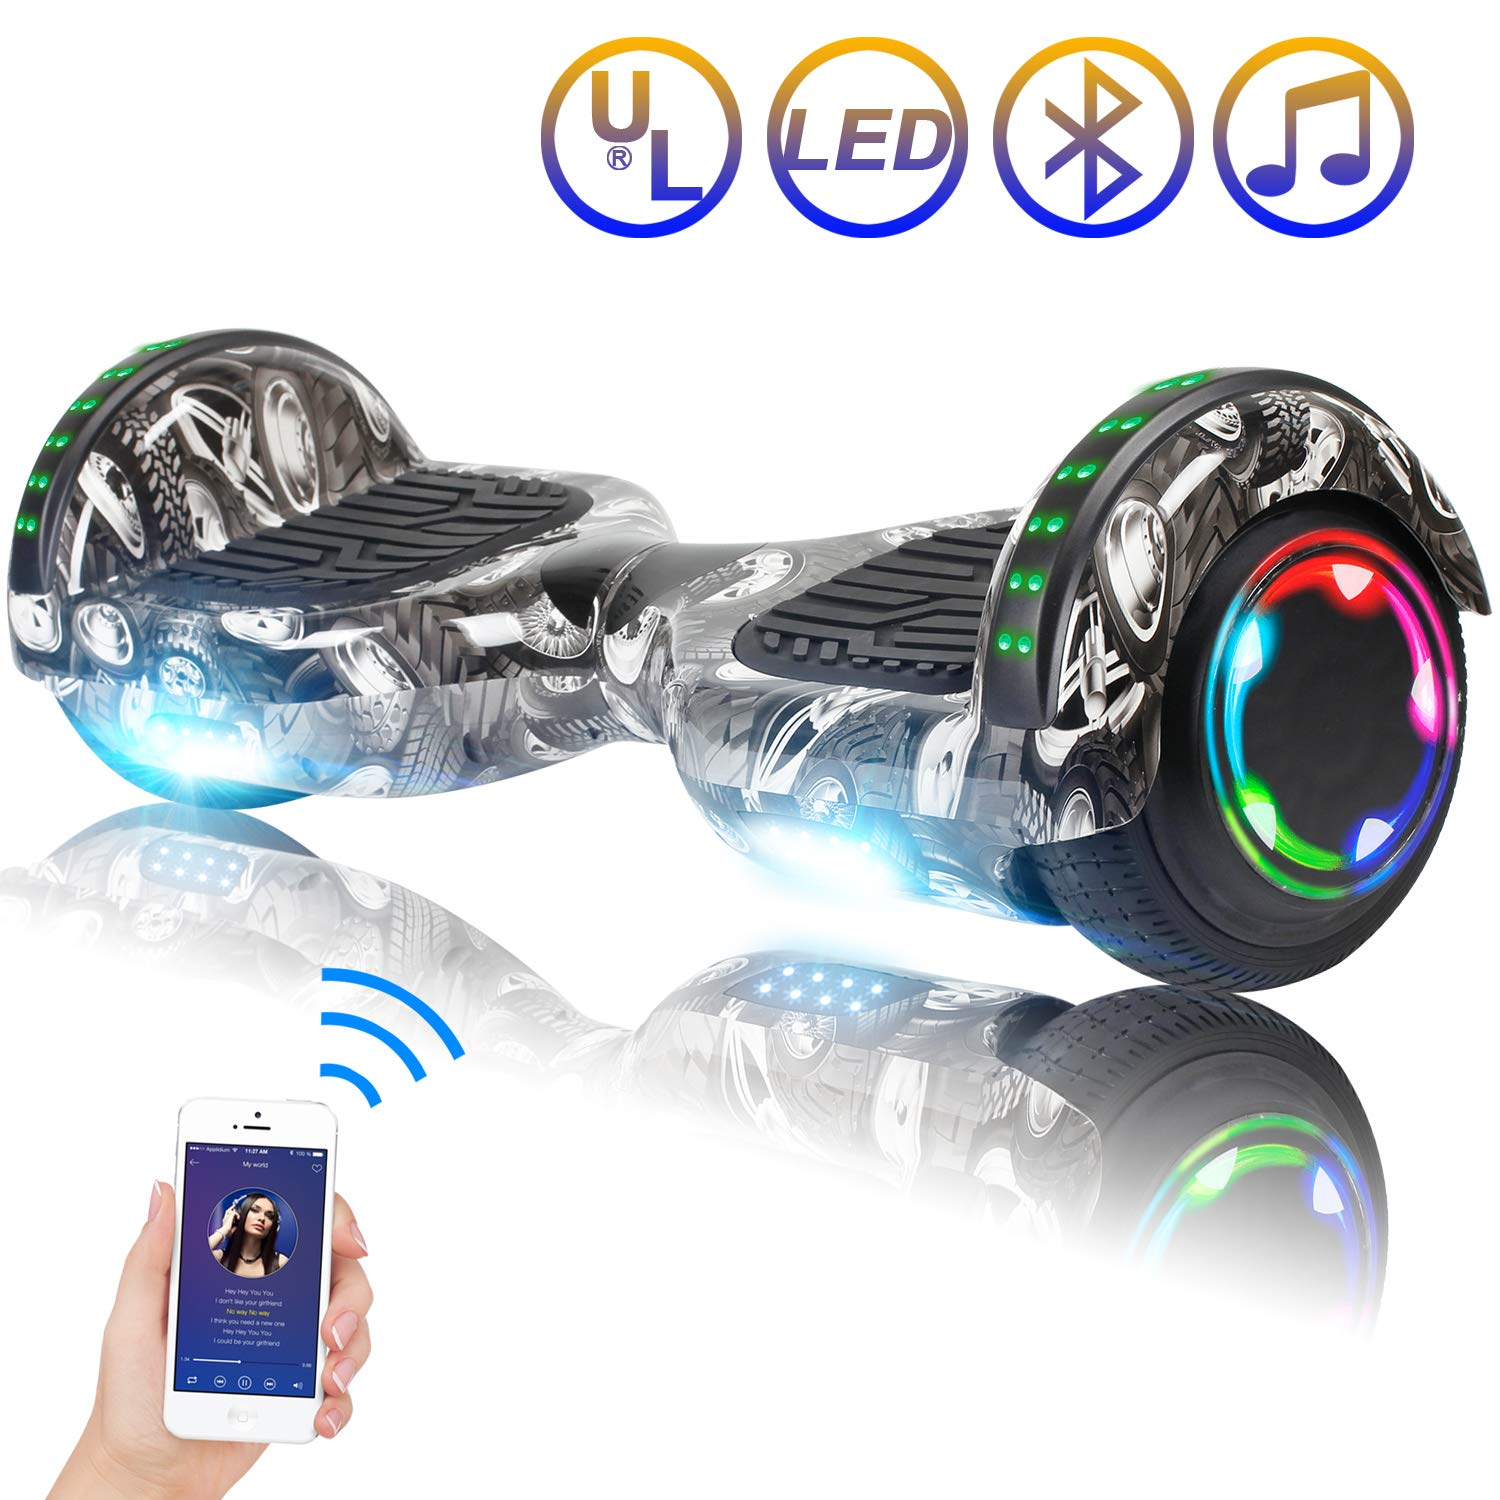 Hoverboard Self Balancing Scooter 6.5'' Two-Wheel Self Balancing Hoverboard with Bluetooth Speaker and LED Lights Electric Scooter for Adult Kids Gift UL 2272 Certified Fun Edition - Tire Graffiti